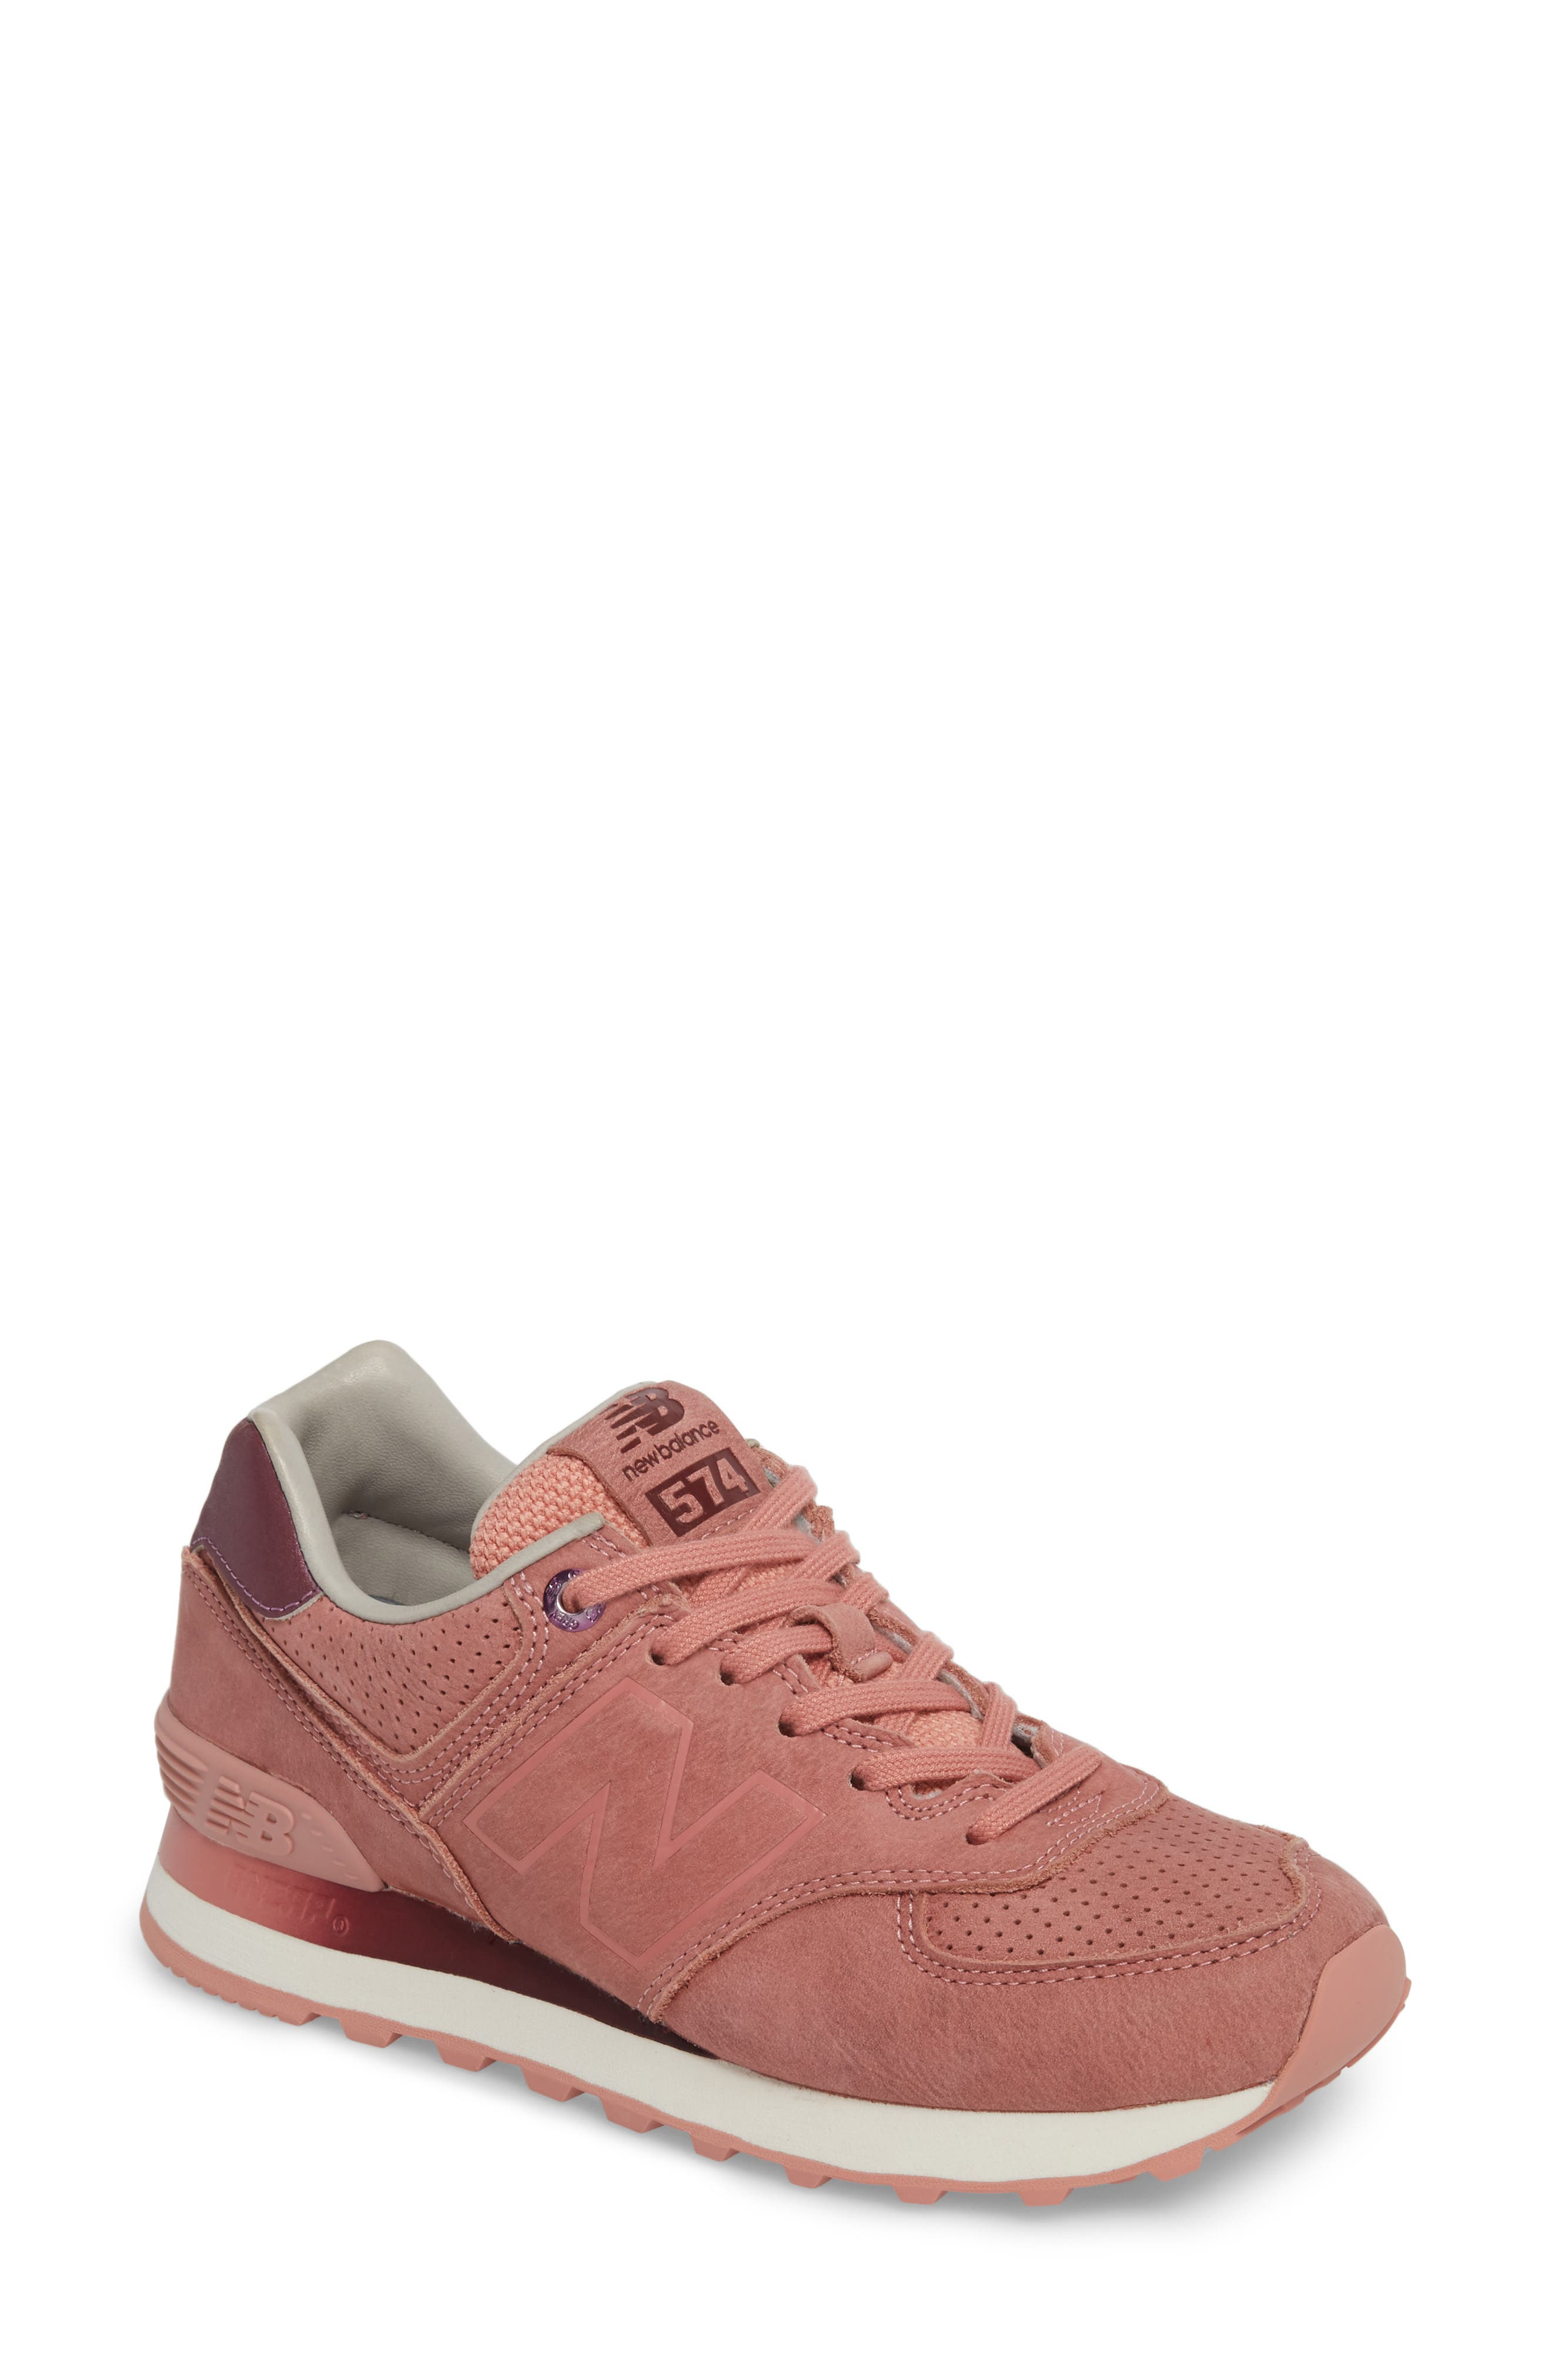 574 Sneaker,                         Main,                         color, Dusted Peach